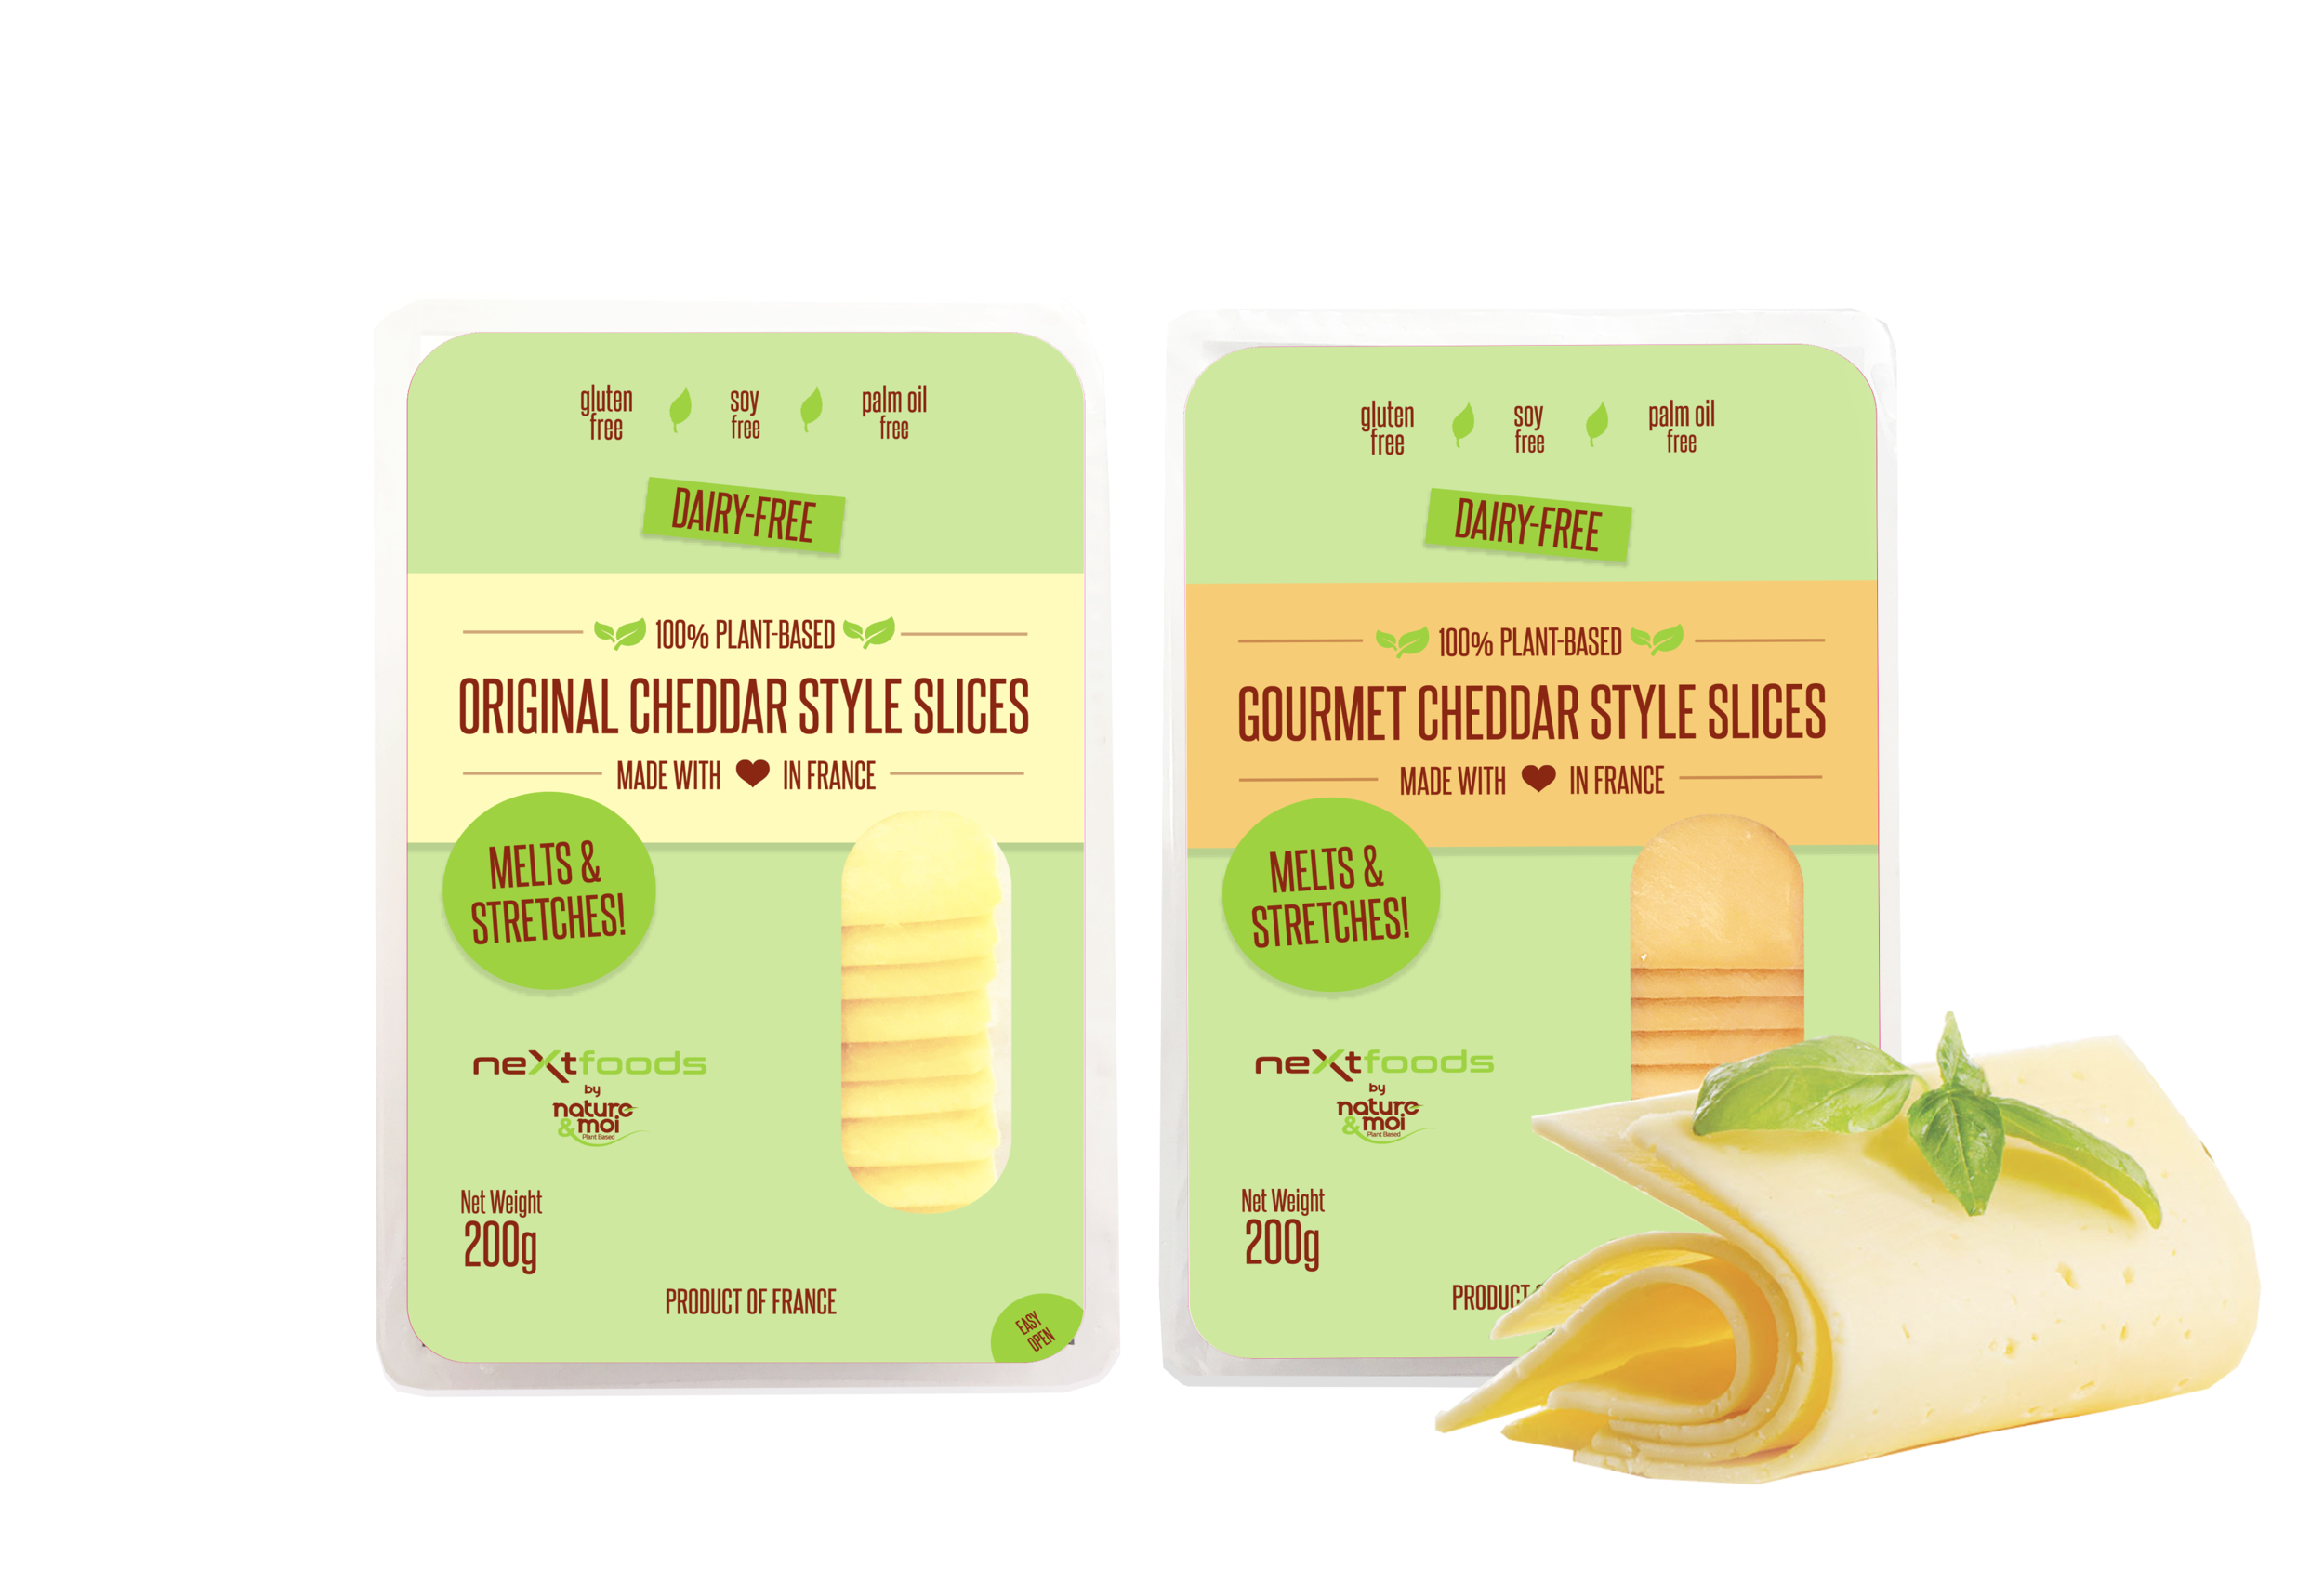 Next cheese range_updated artwork.png